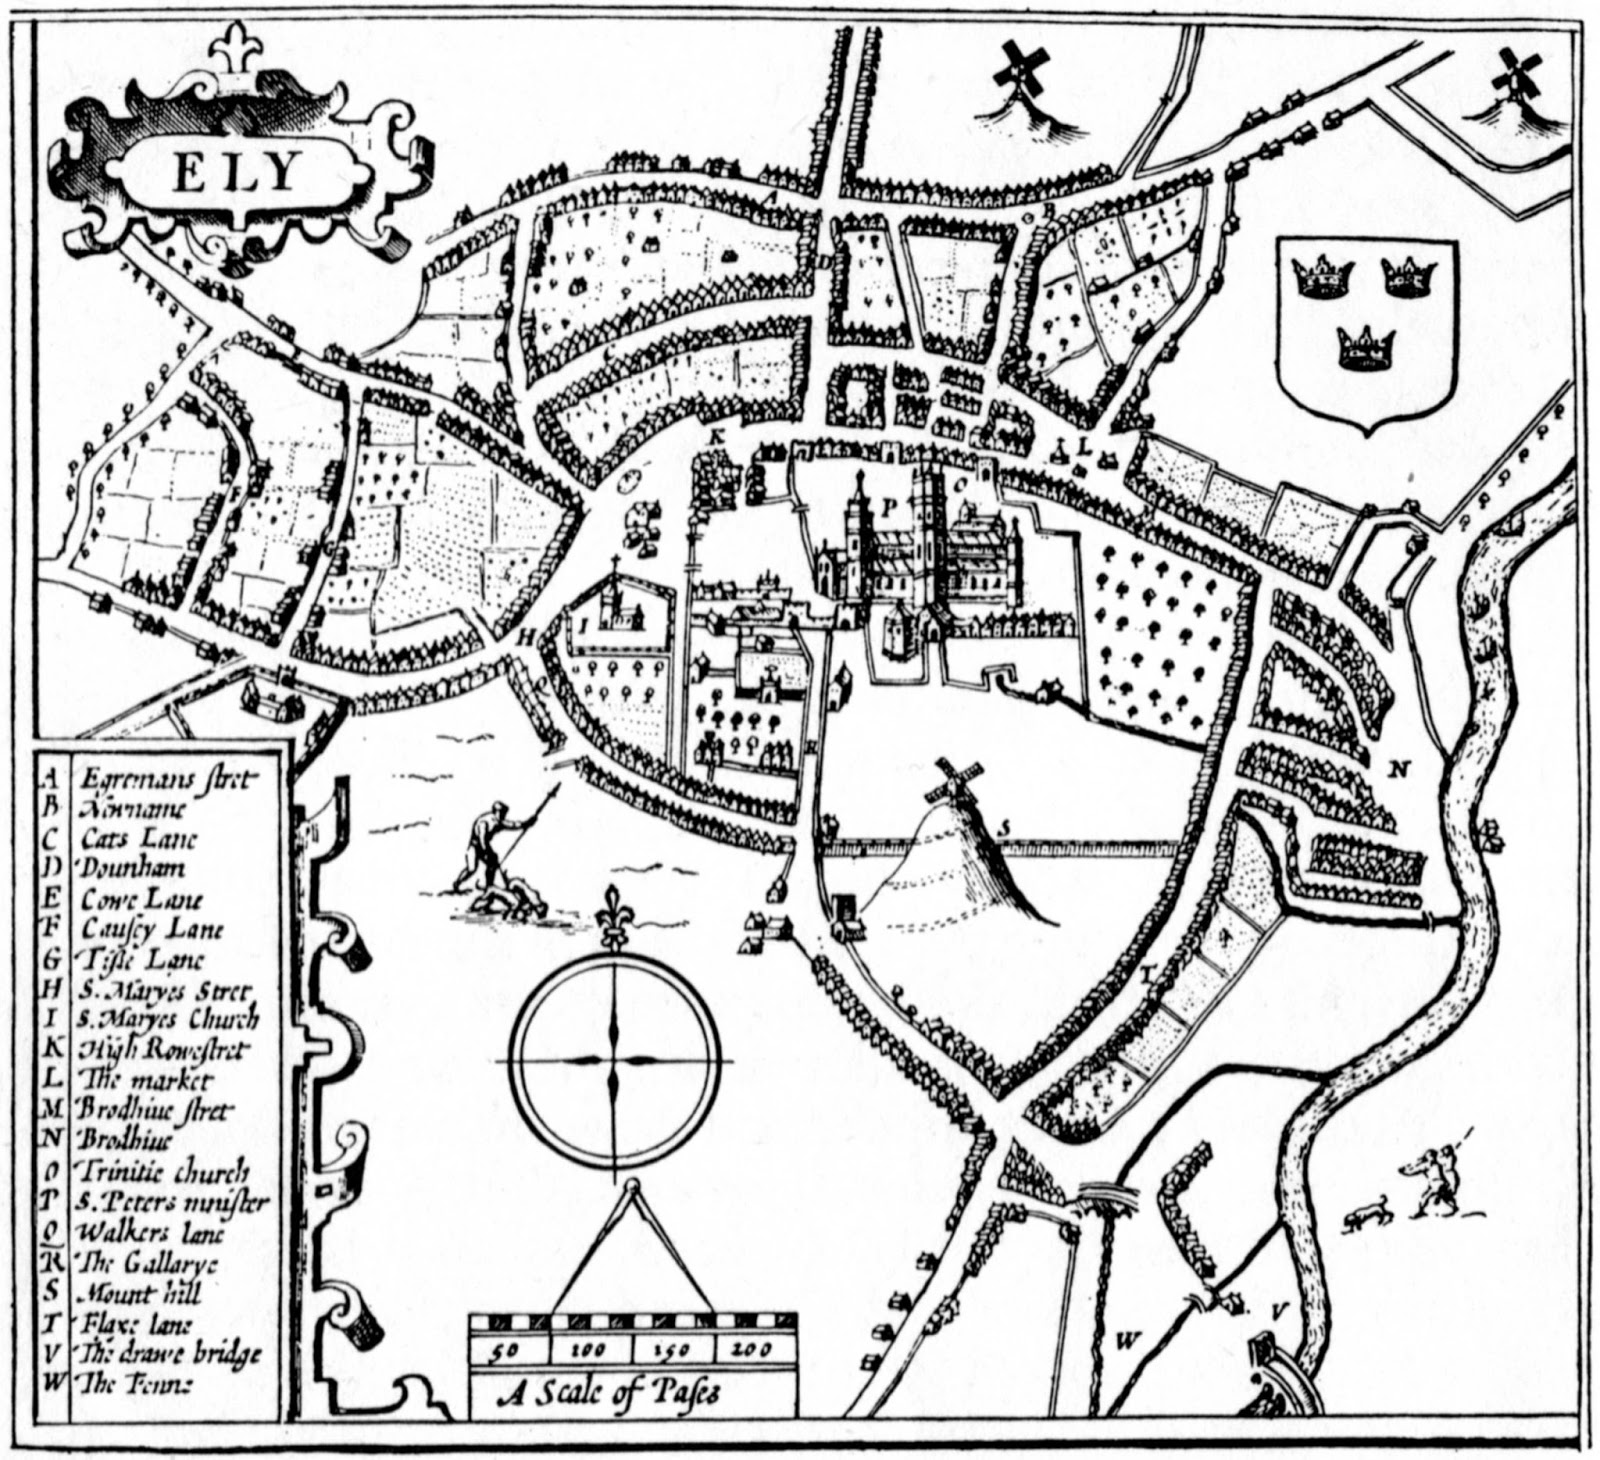 The History Girls: Oliver Cromwell's Ely by Katherine Clements